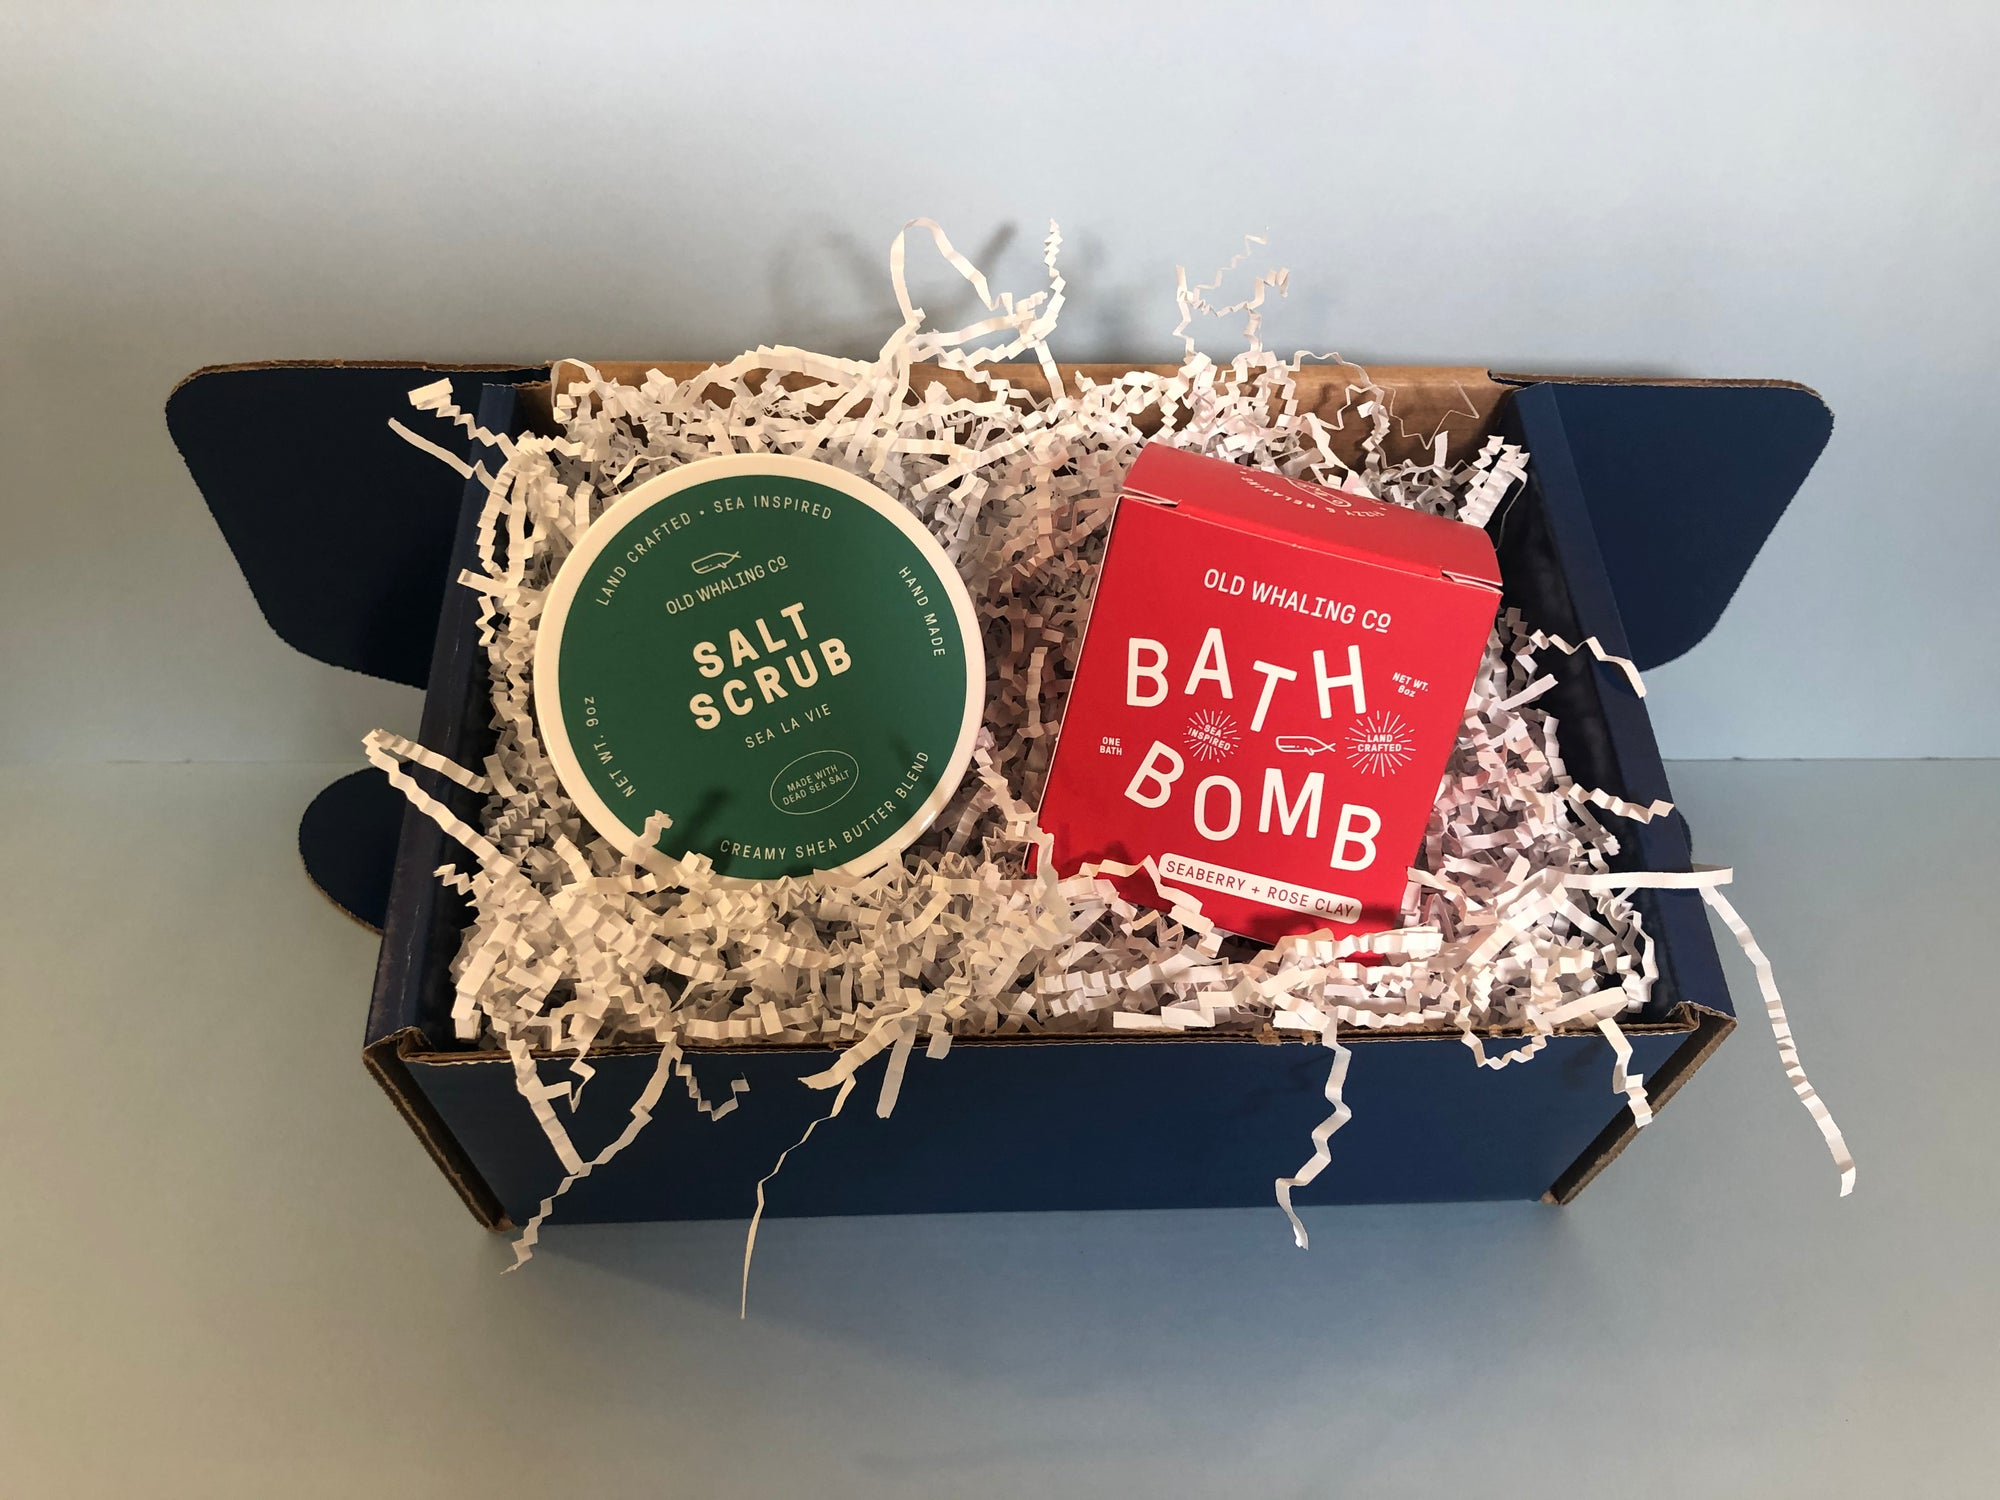 Perfect Pair: Old Whaling Company Salt Scrub + Bath Bomb